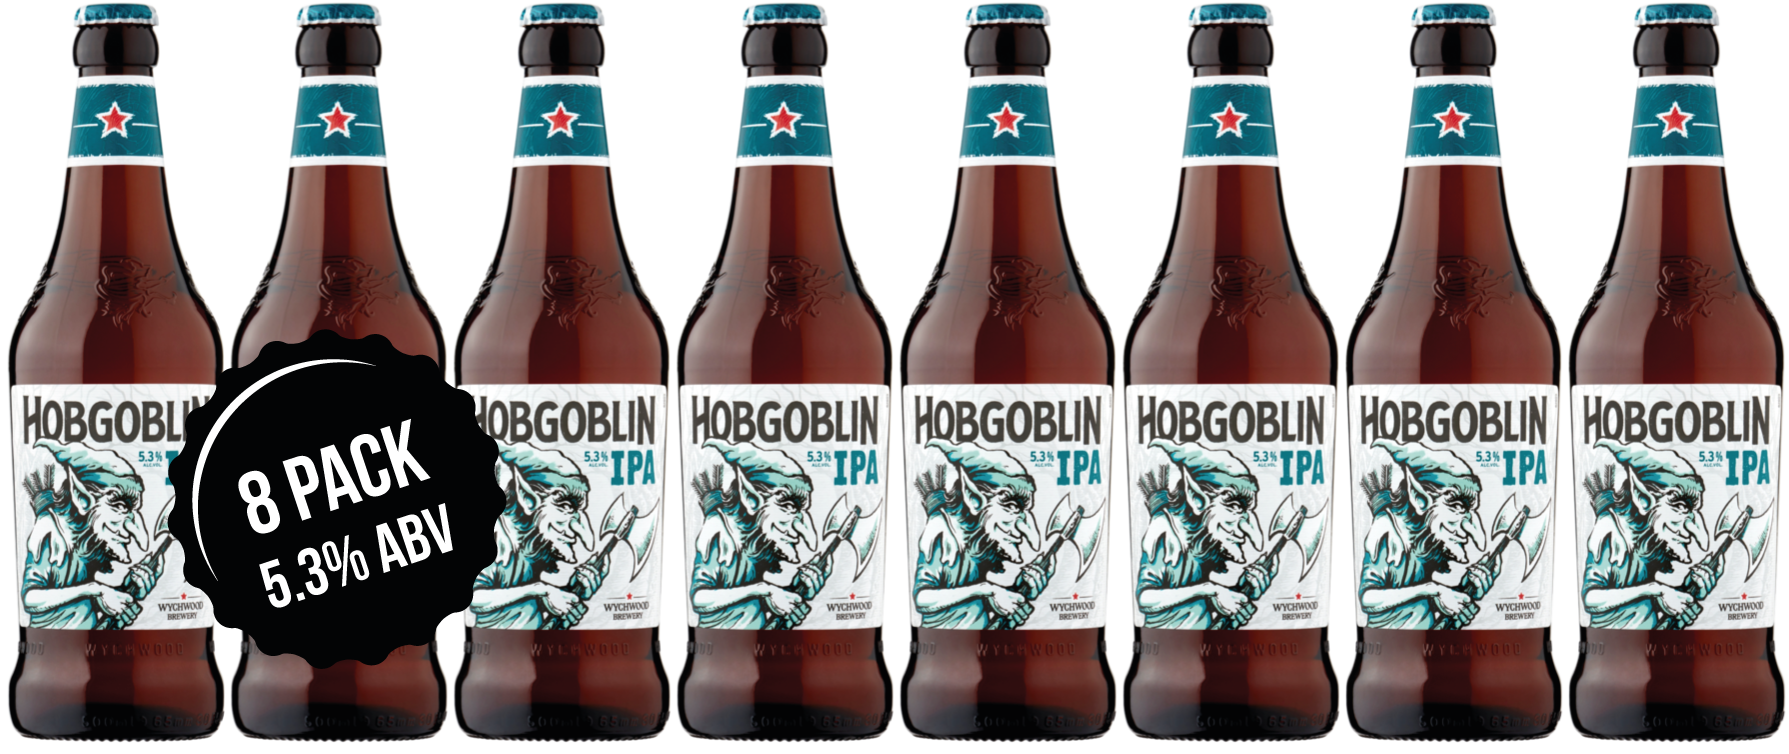 Hobgoblin IPA 8 x 500ml bottles